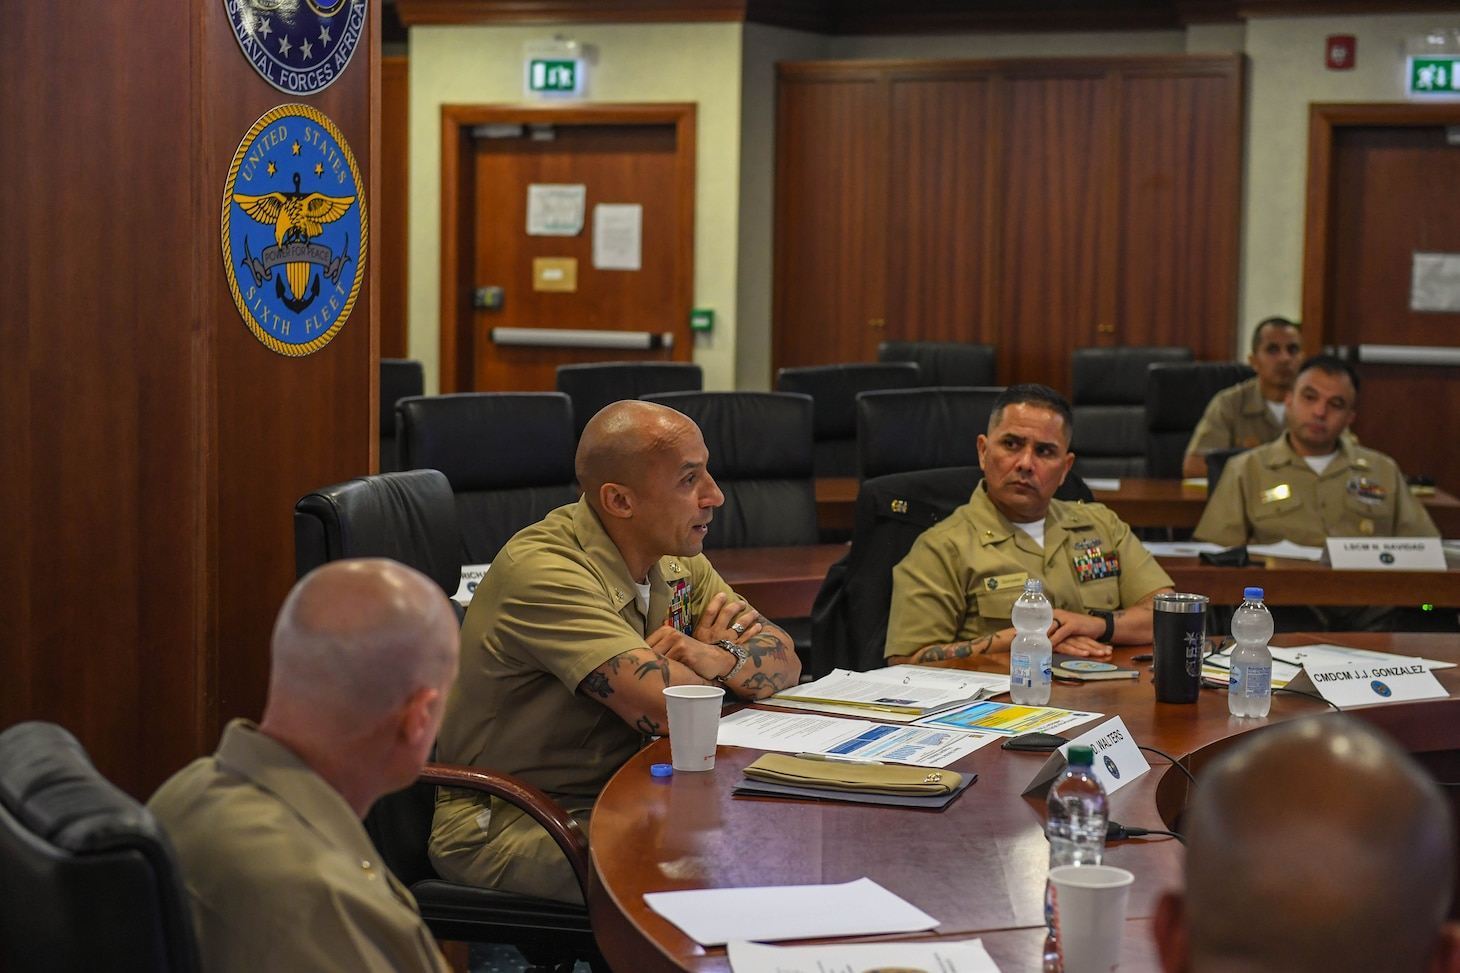 (June 15, 2021) U.S. Naval Forces Europe-Africa Fleet Master Chief Derrick Walters, center, and Command Master Chief Johannes Gonzalez, U.S. Sixth Fleet Command Master Chief, center right, address attendees at a Command Senior Enlisted Symposium at Naval Support Activity Naples, Italy, June 15, 2021. U.S. Naval Forces Europe-Africa, headquartered in Naples, Italy, Conducts the full spectrum of joint and naval operations, often in concert with allied and interagency partners in order to advance U.S. national interests and security and stability in Europe and Africa. (U.S. Navy Photo by Mass Communication Specialist 2nd Class Trey Fowler/Released)